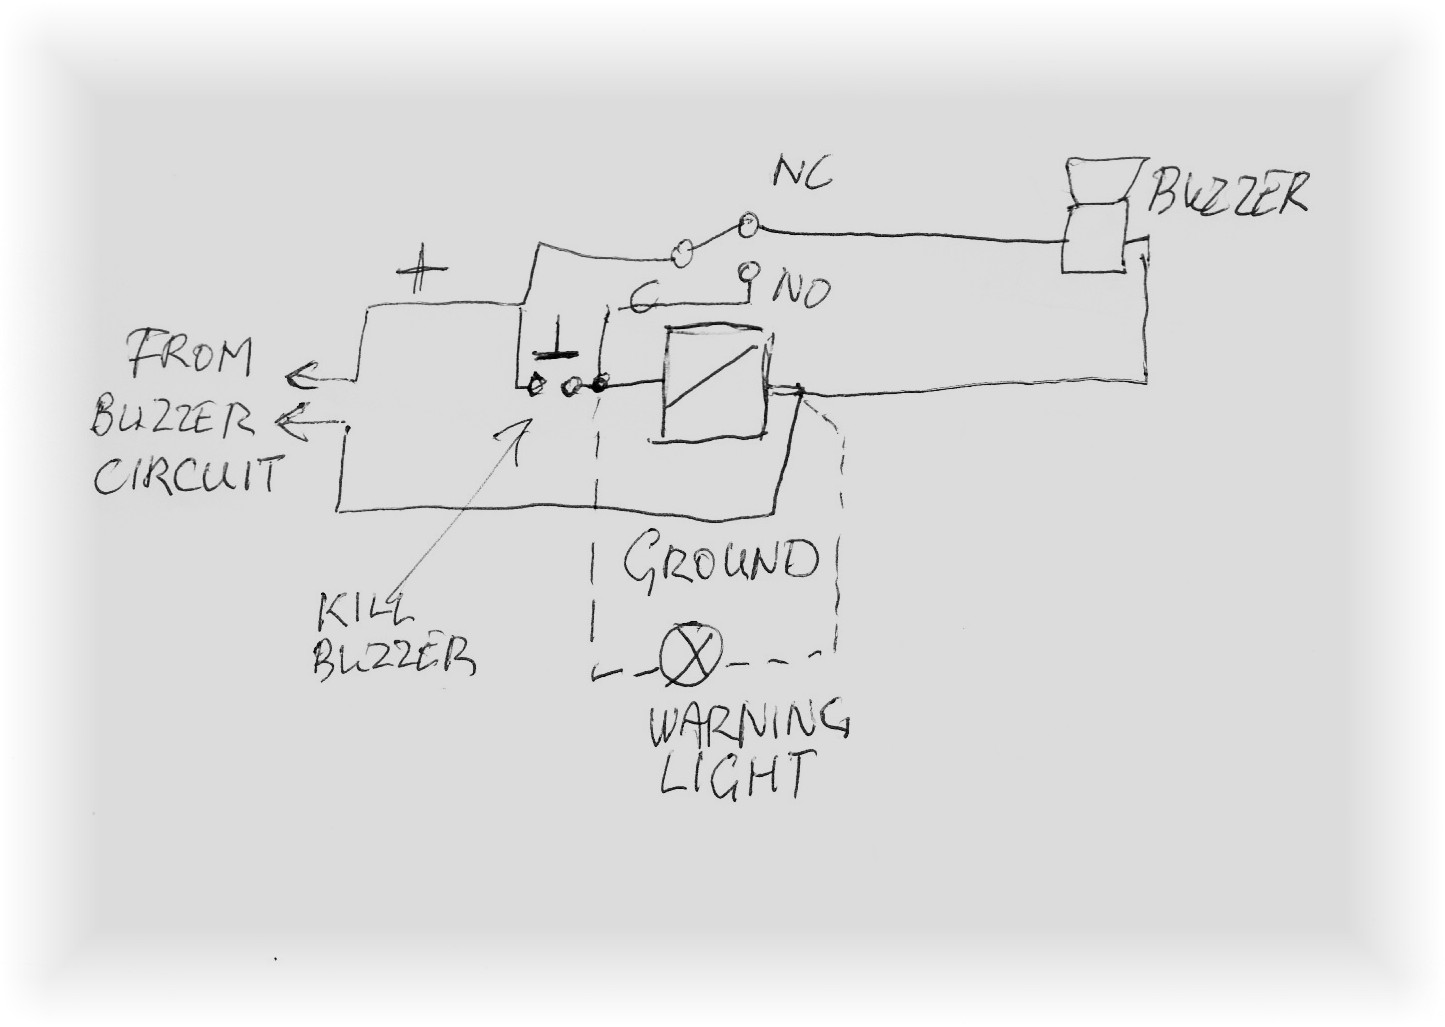 Wiring Diagram For Alarm Silence : Indicator buzzer wiring diagram images